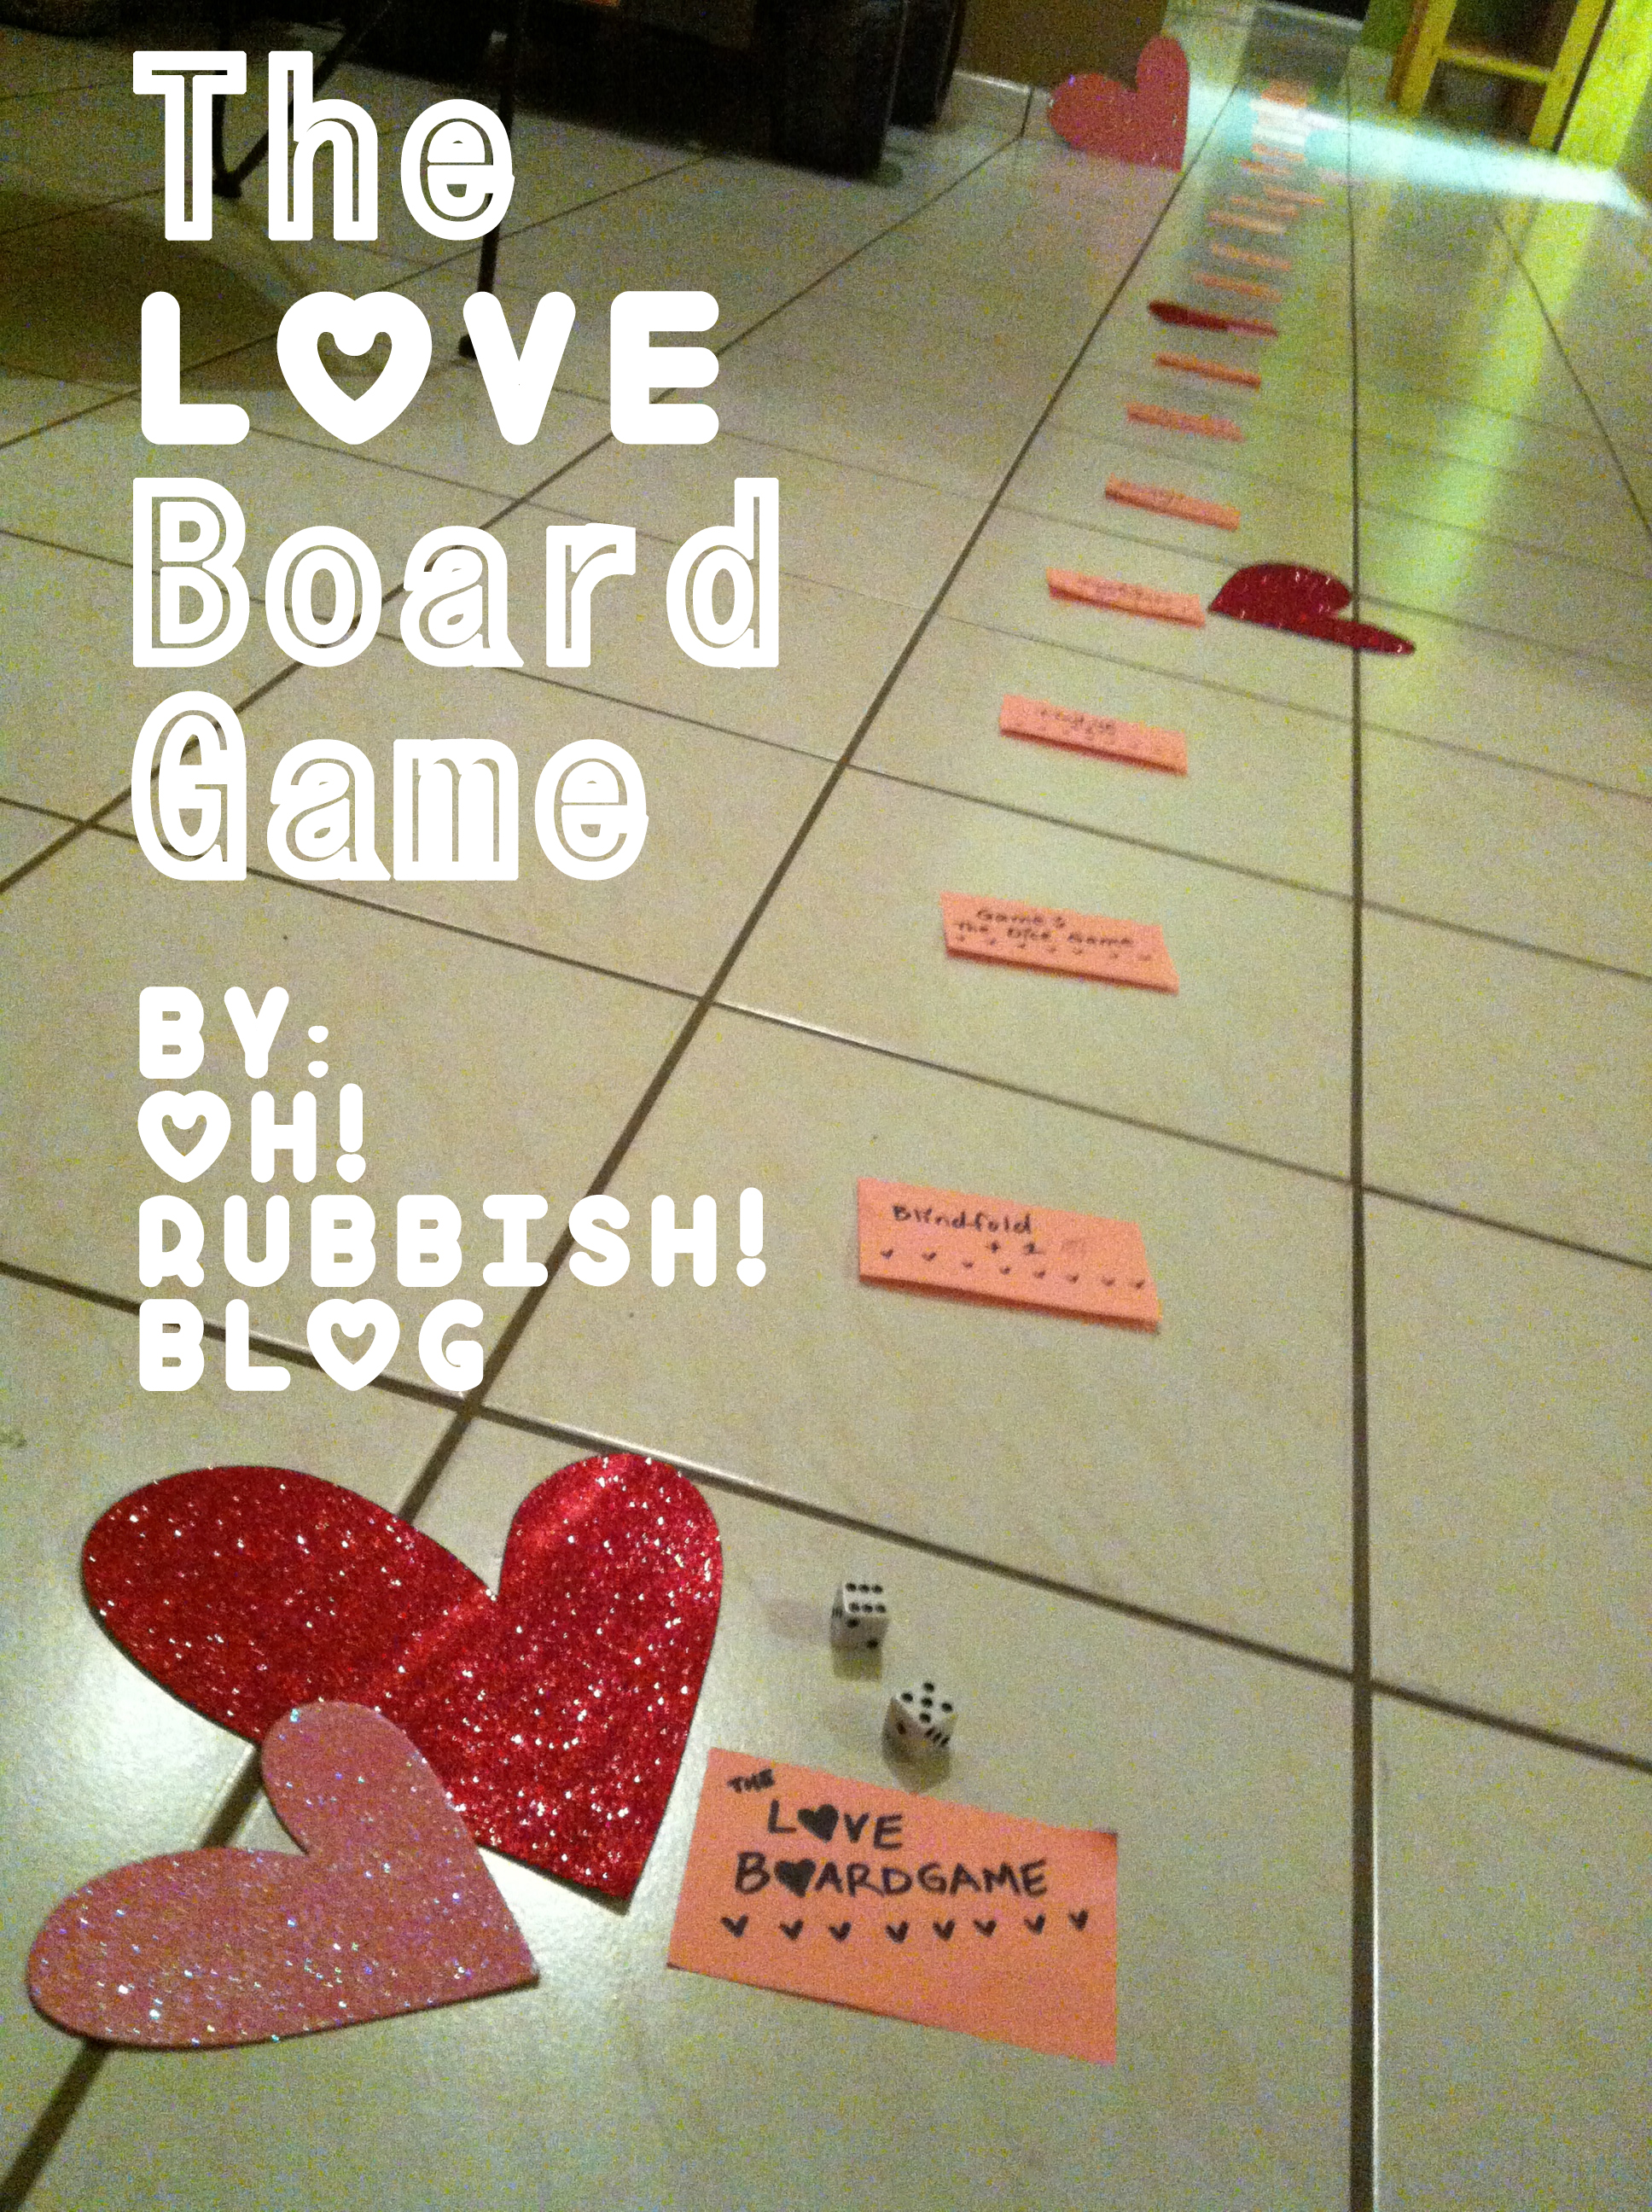 the love board game :: valentine's games for couples :: valentine's